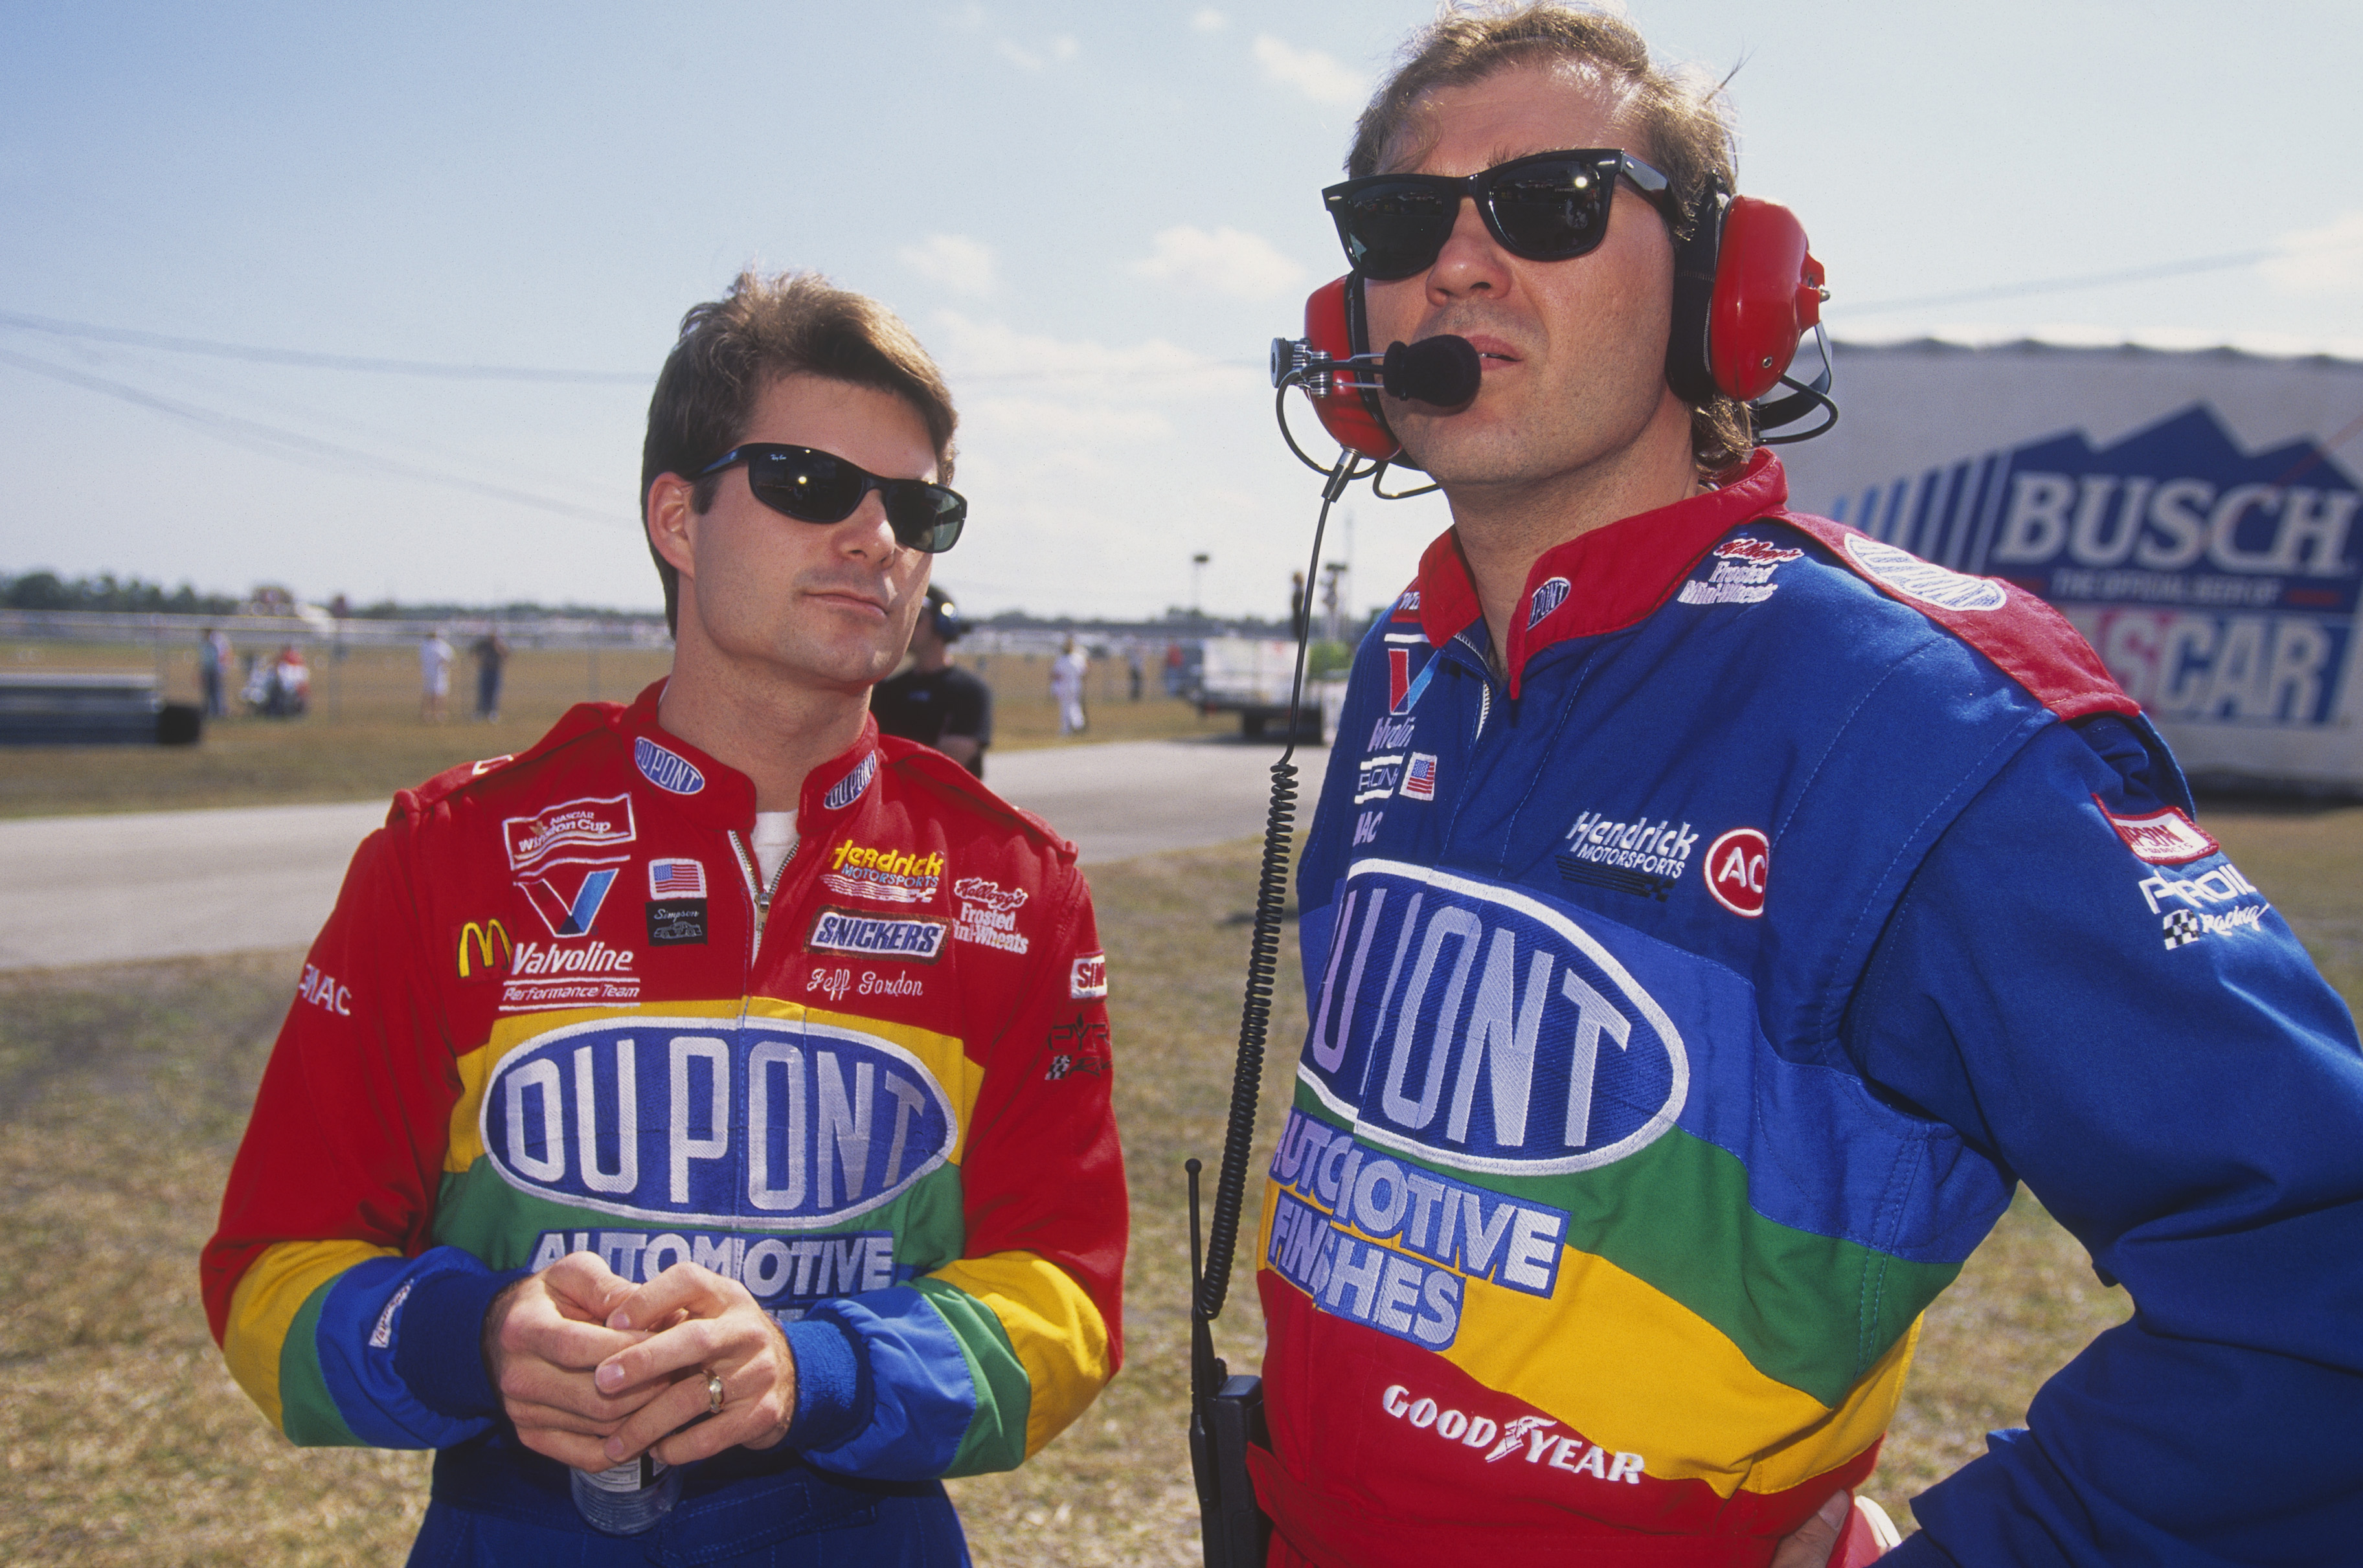 DAYTONA BEACH, FL - FEBRUARY 19: Jeff Gordon stands next to his crew chief Ray Evernham during the Daytona 500 at the Daytona Speedway on February 19, 1995 in Daytona Beach, Florida. (Photo by Focus on Sport/Getty Images)